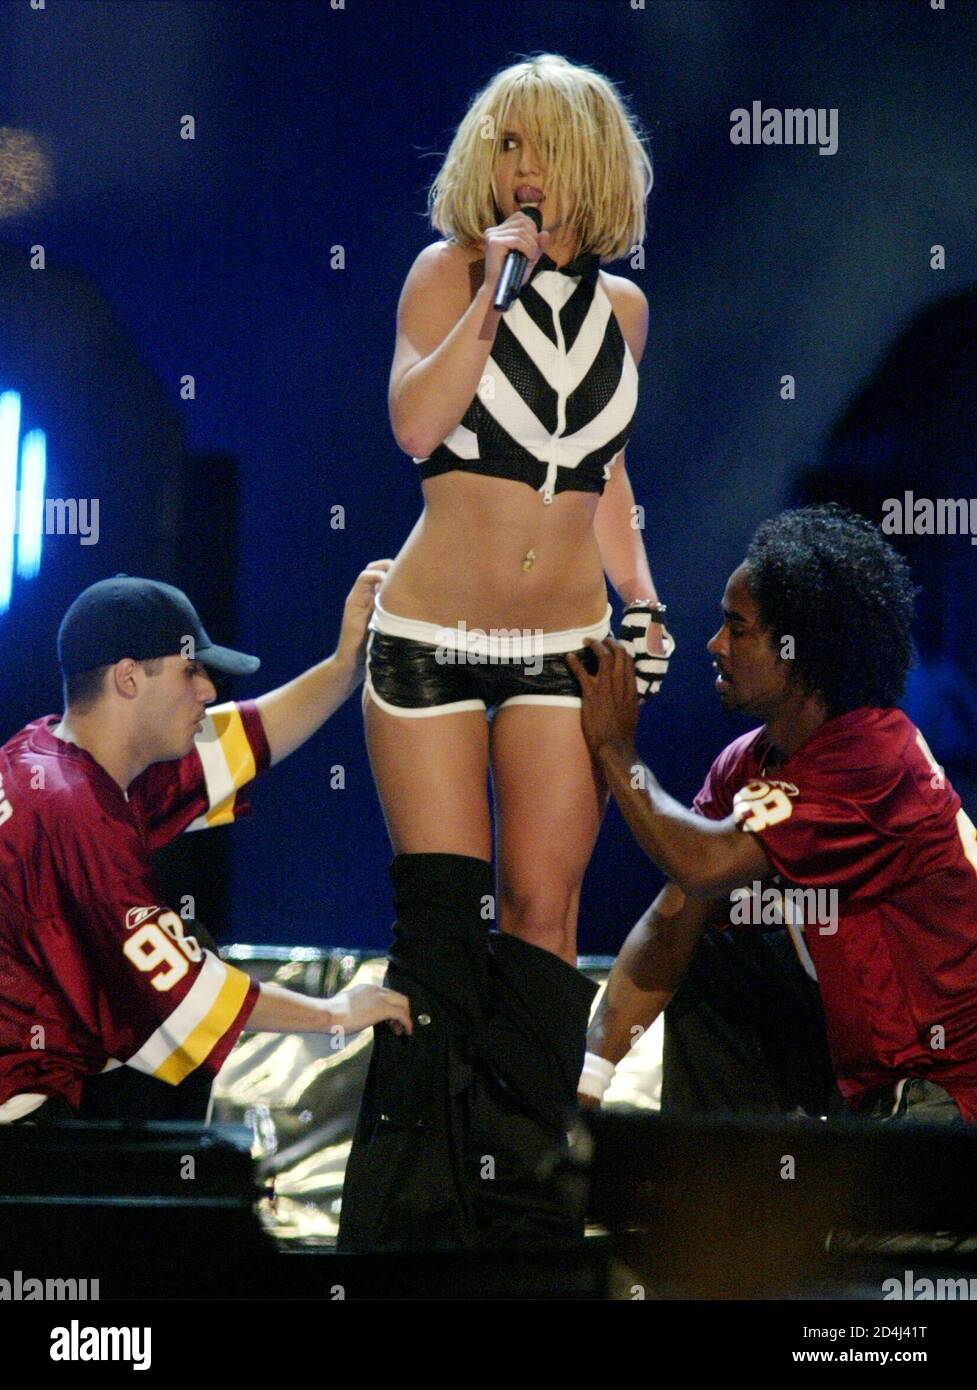 Entertainer Britney Spears performs on the National Mall during the 2003 NFL Kickoff Live concert in Washington, D.C., on September 4, 2003. PHOTO TAKEN SEPTEMBER 4 REUTERS/Molly Riley  MR/GAC Stock Photo